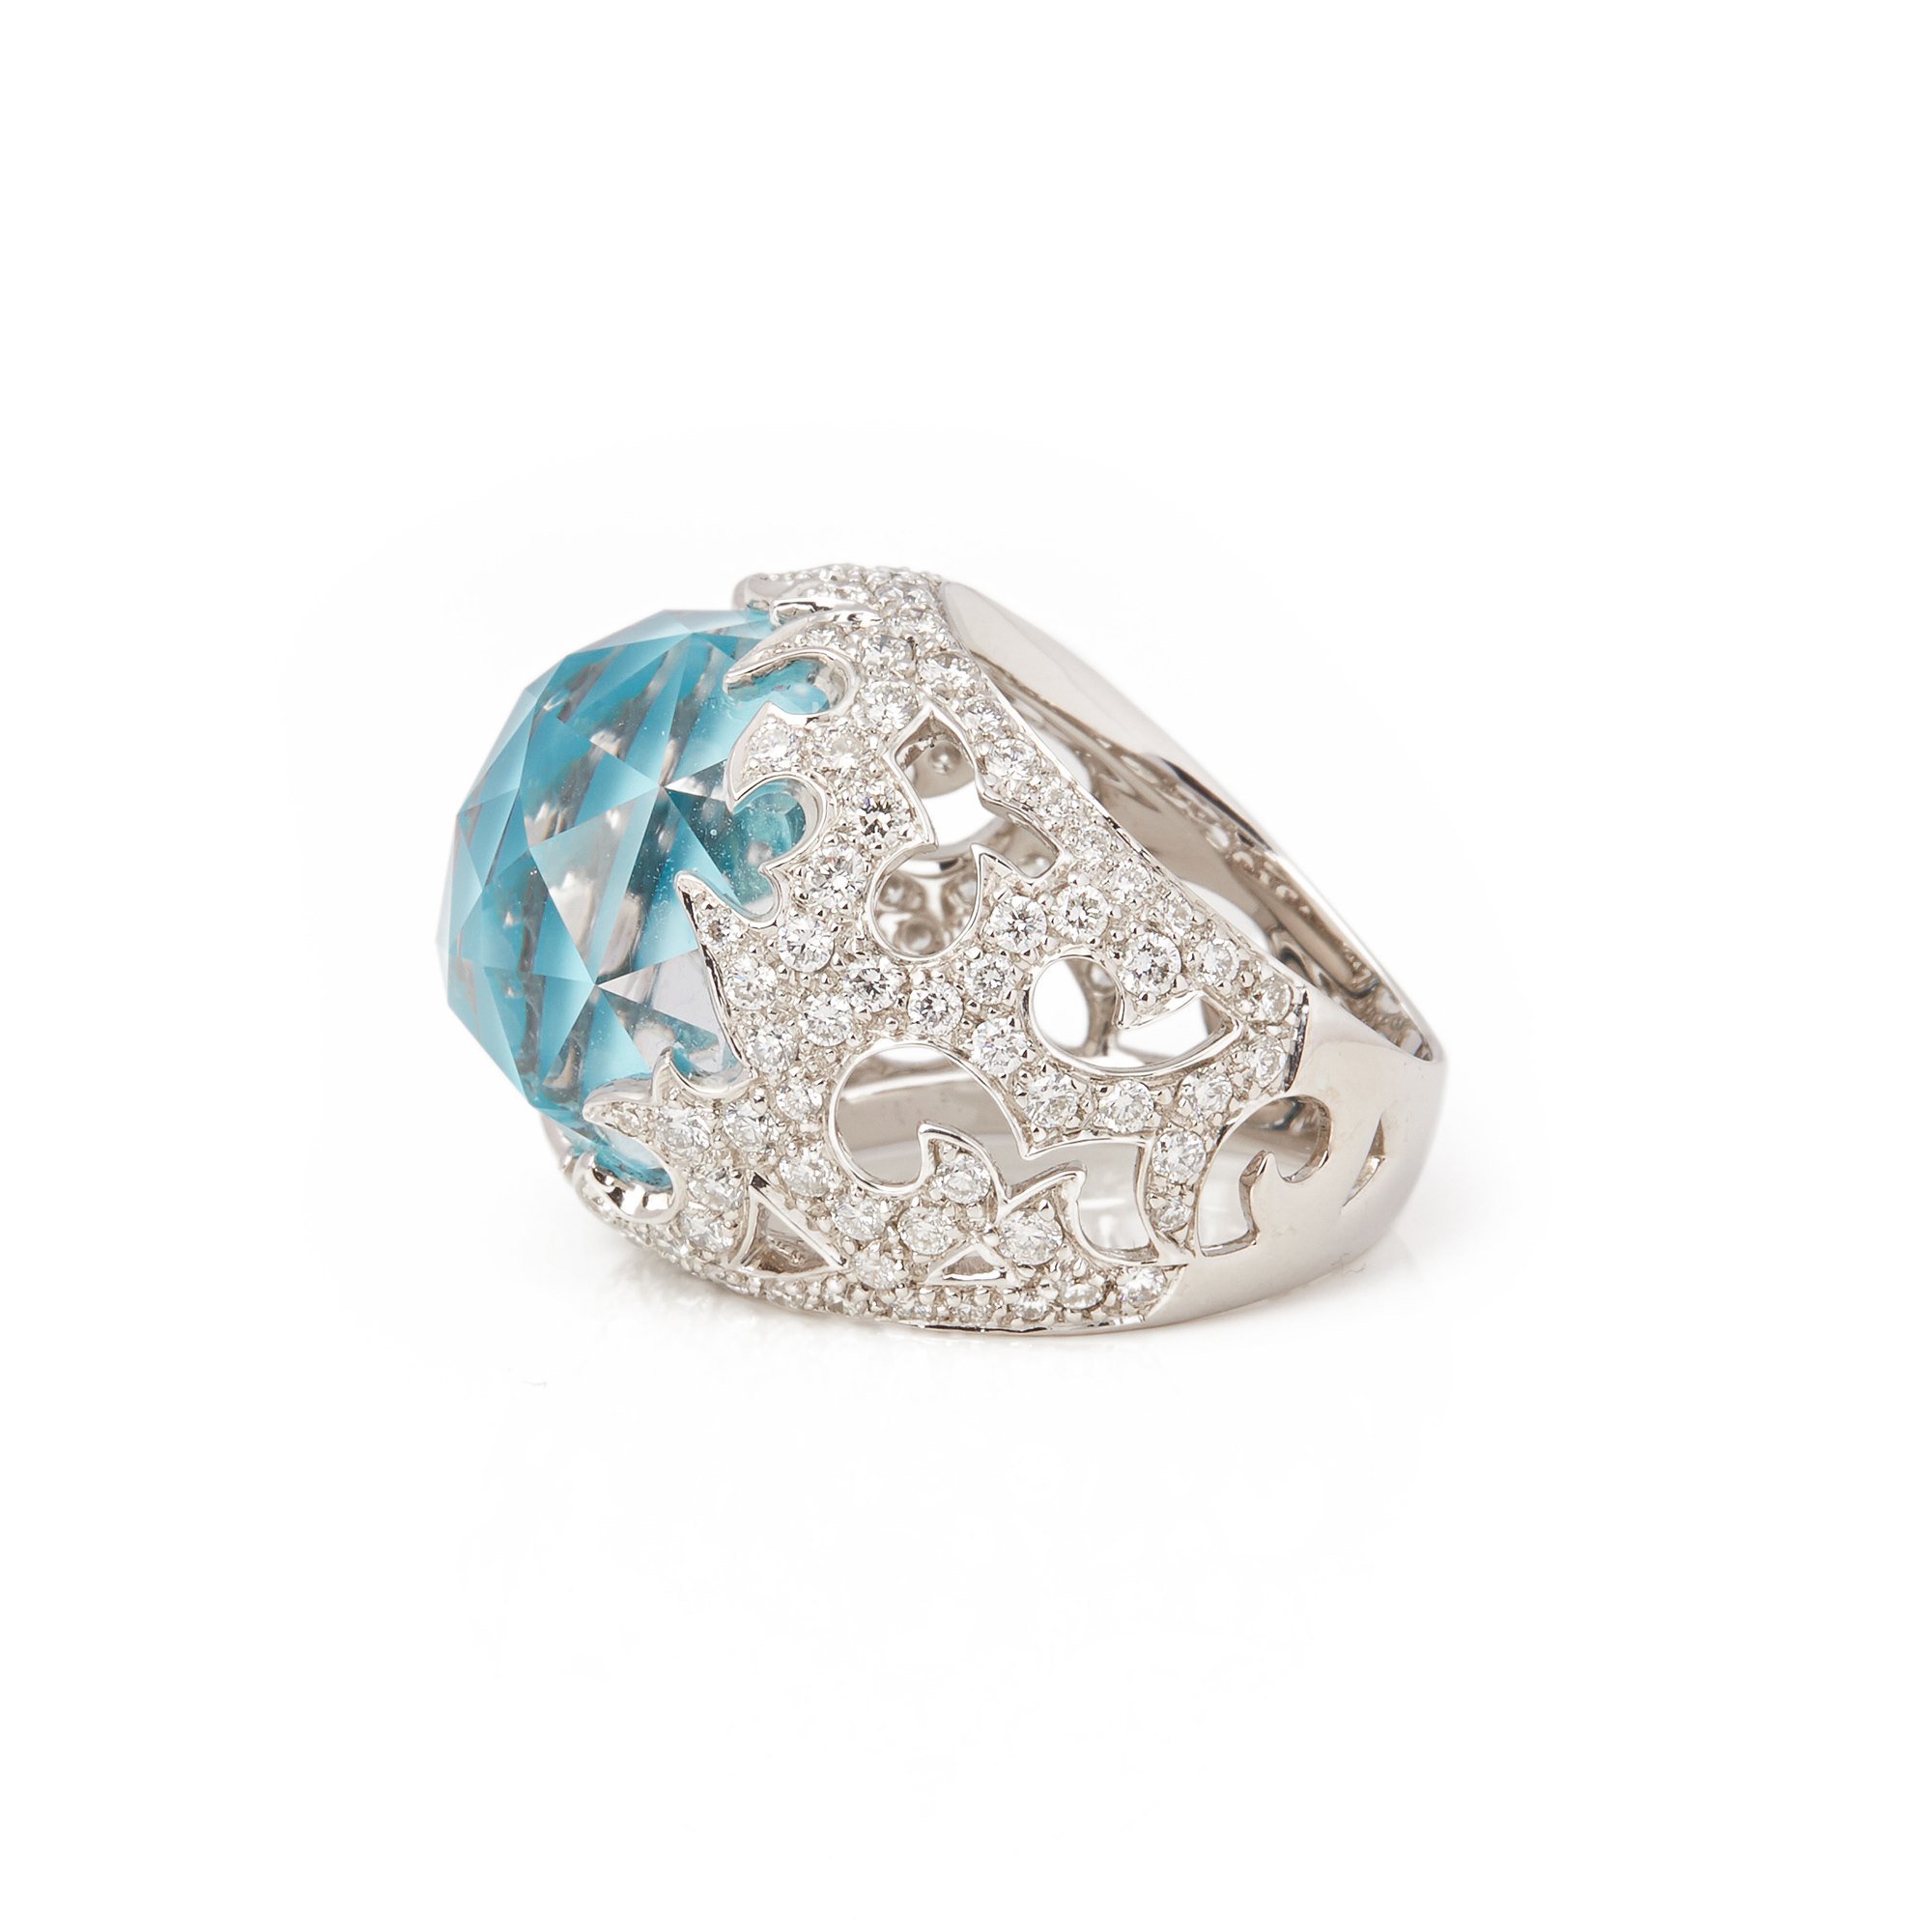 Stephen Webster Borneo lipstick 18ct White Gold Crystal Haze and Diamond Ring